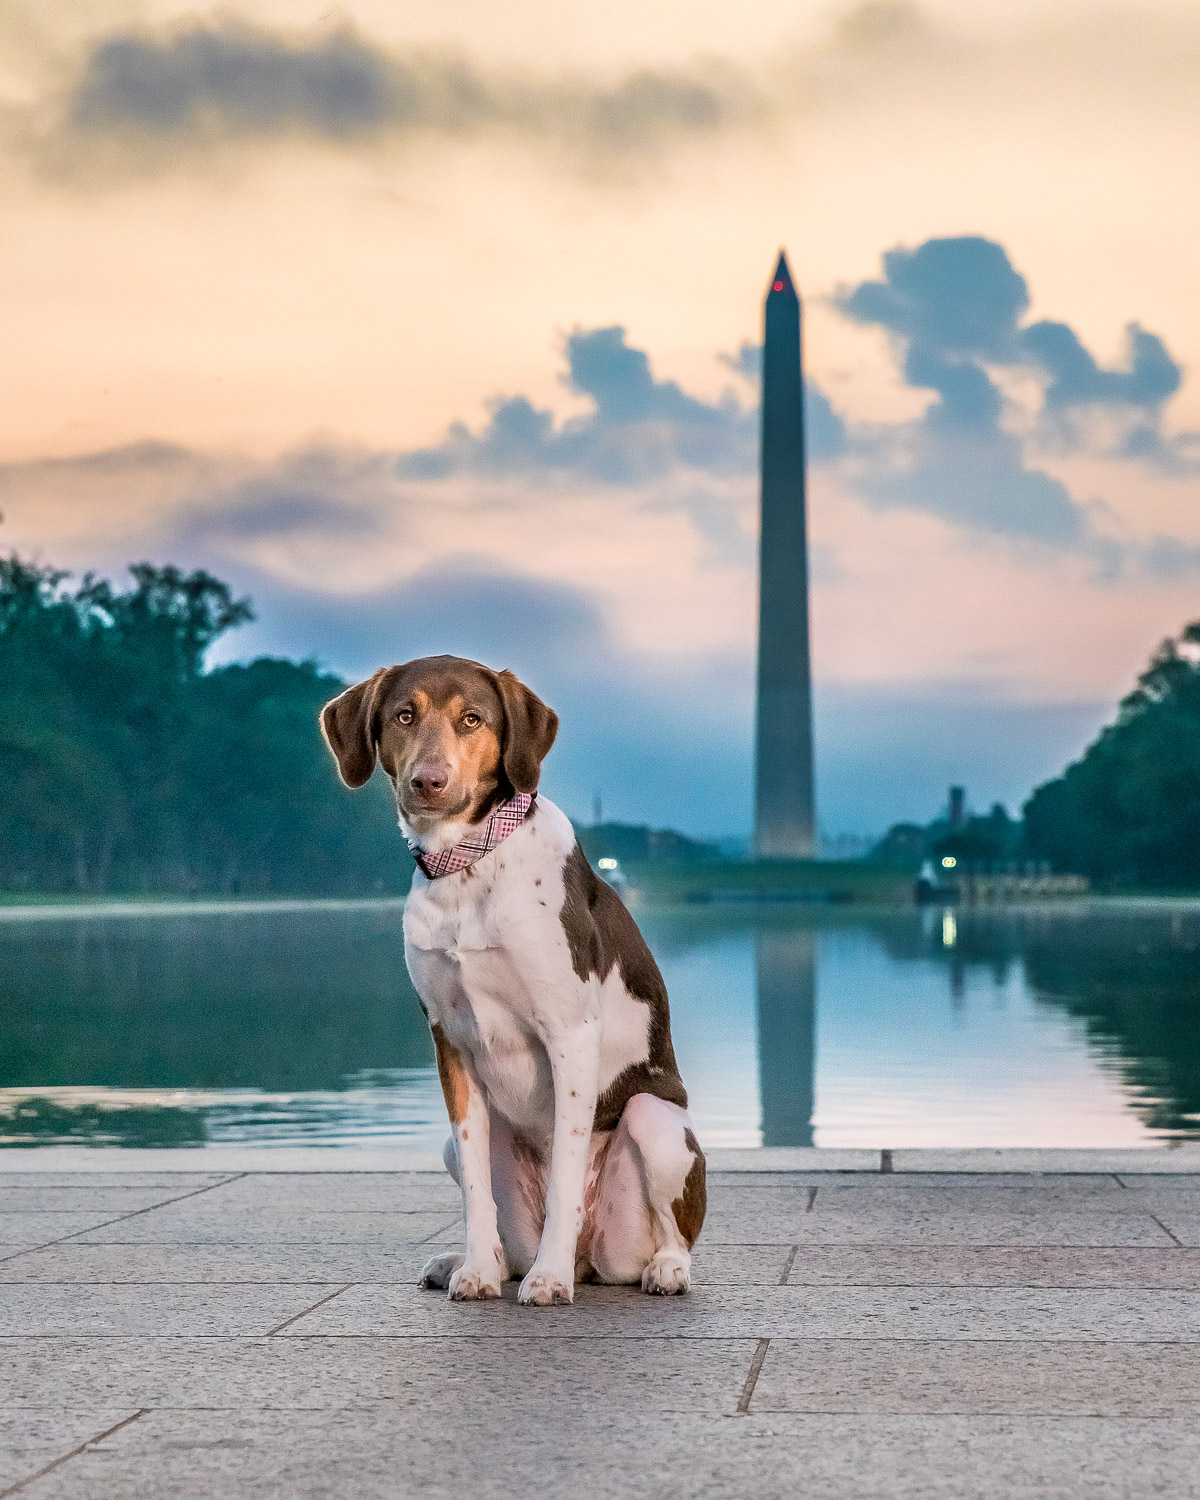 Washington Monument Sunrise in the Background with A Dog Sitting.jpg